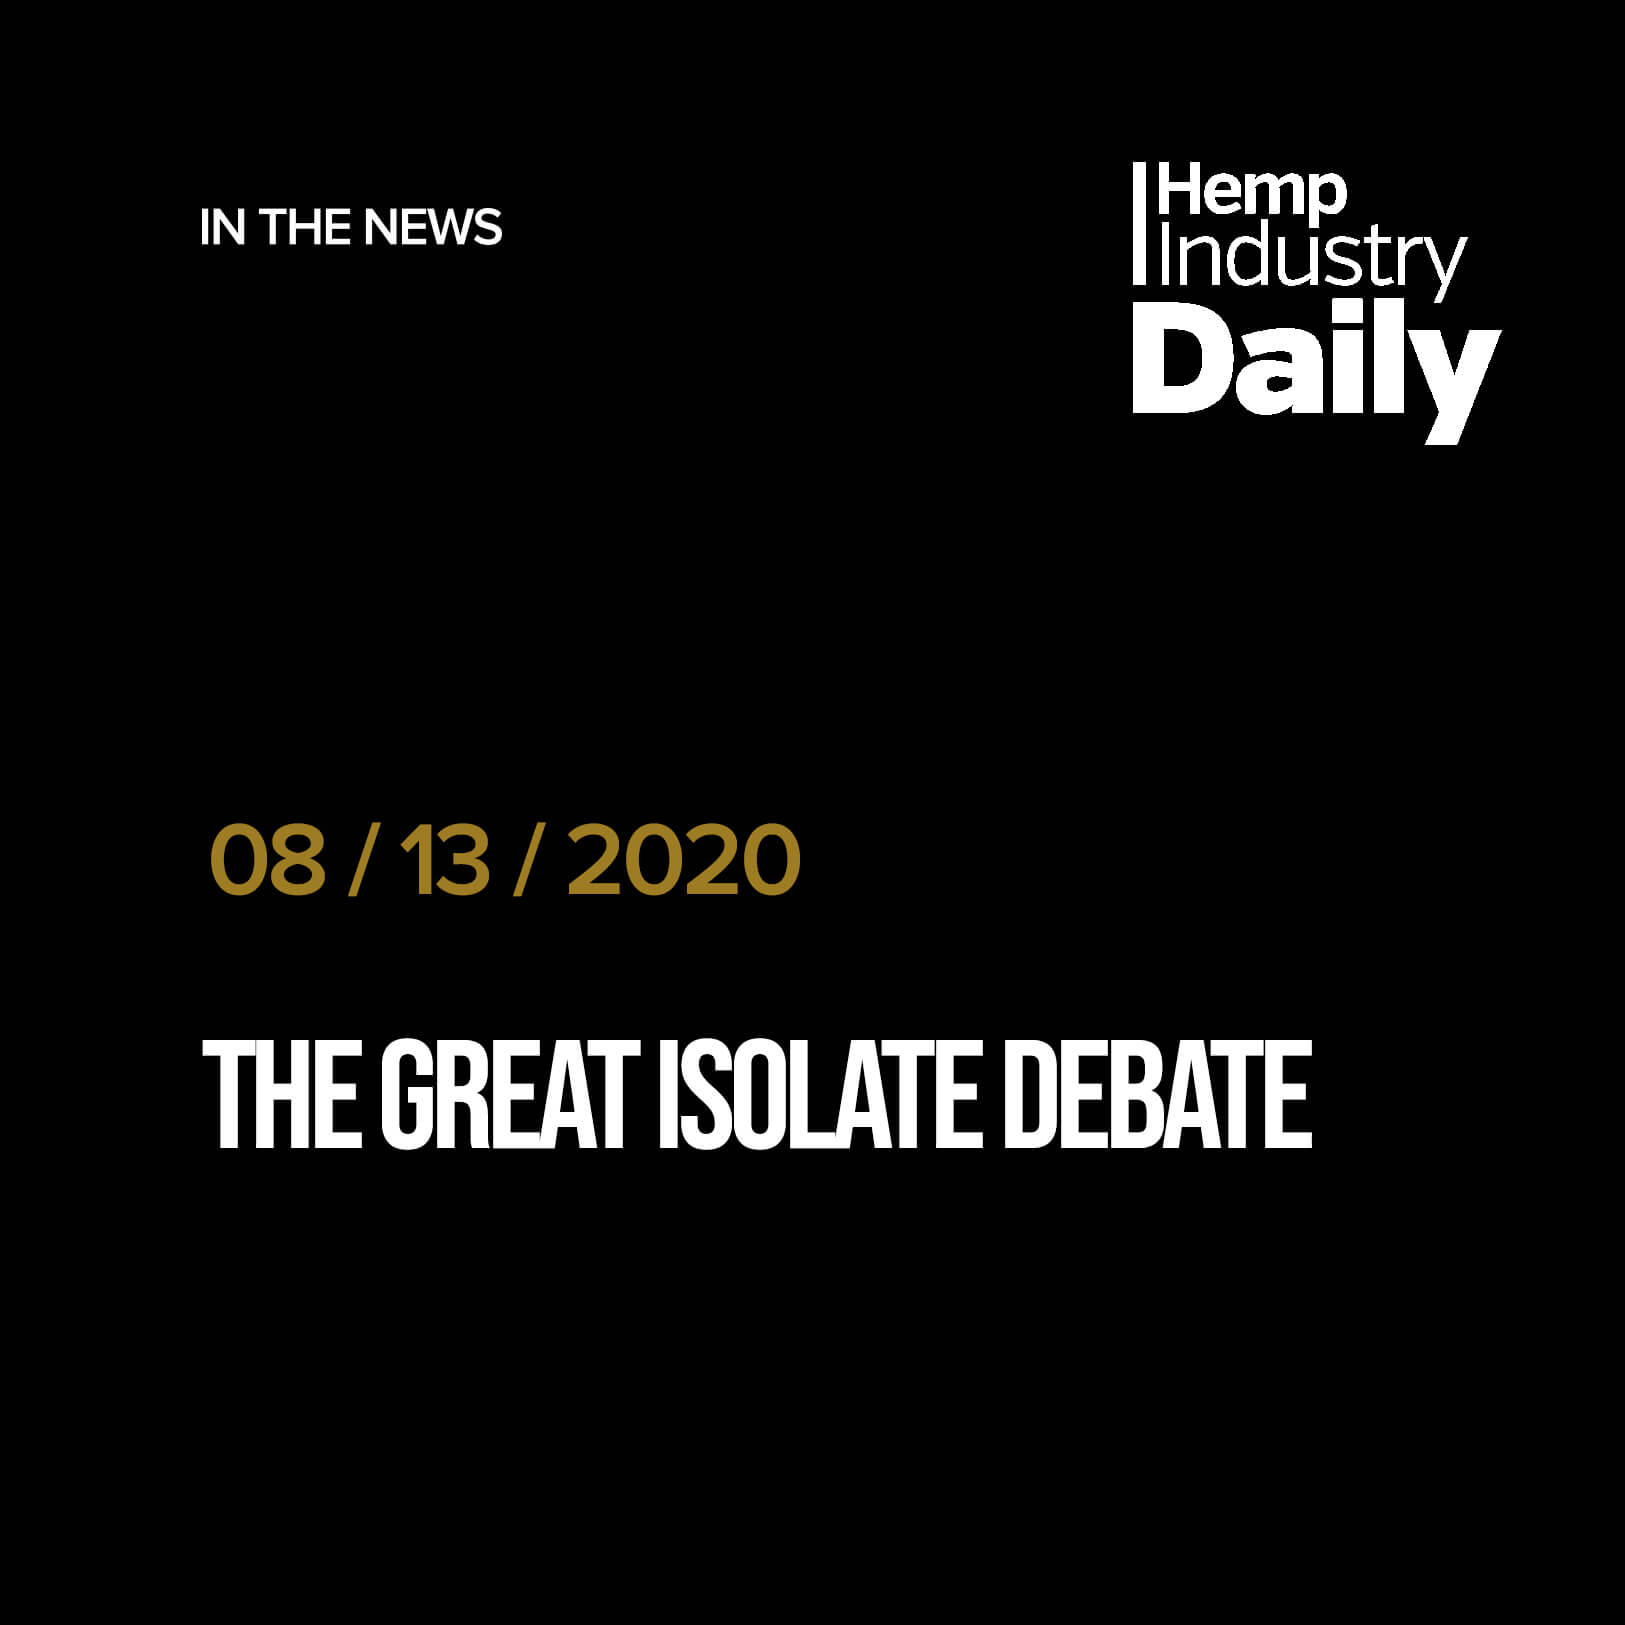 The Great Isolate Debate